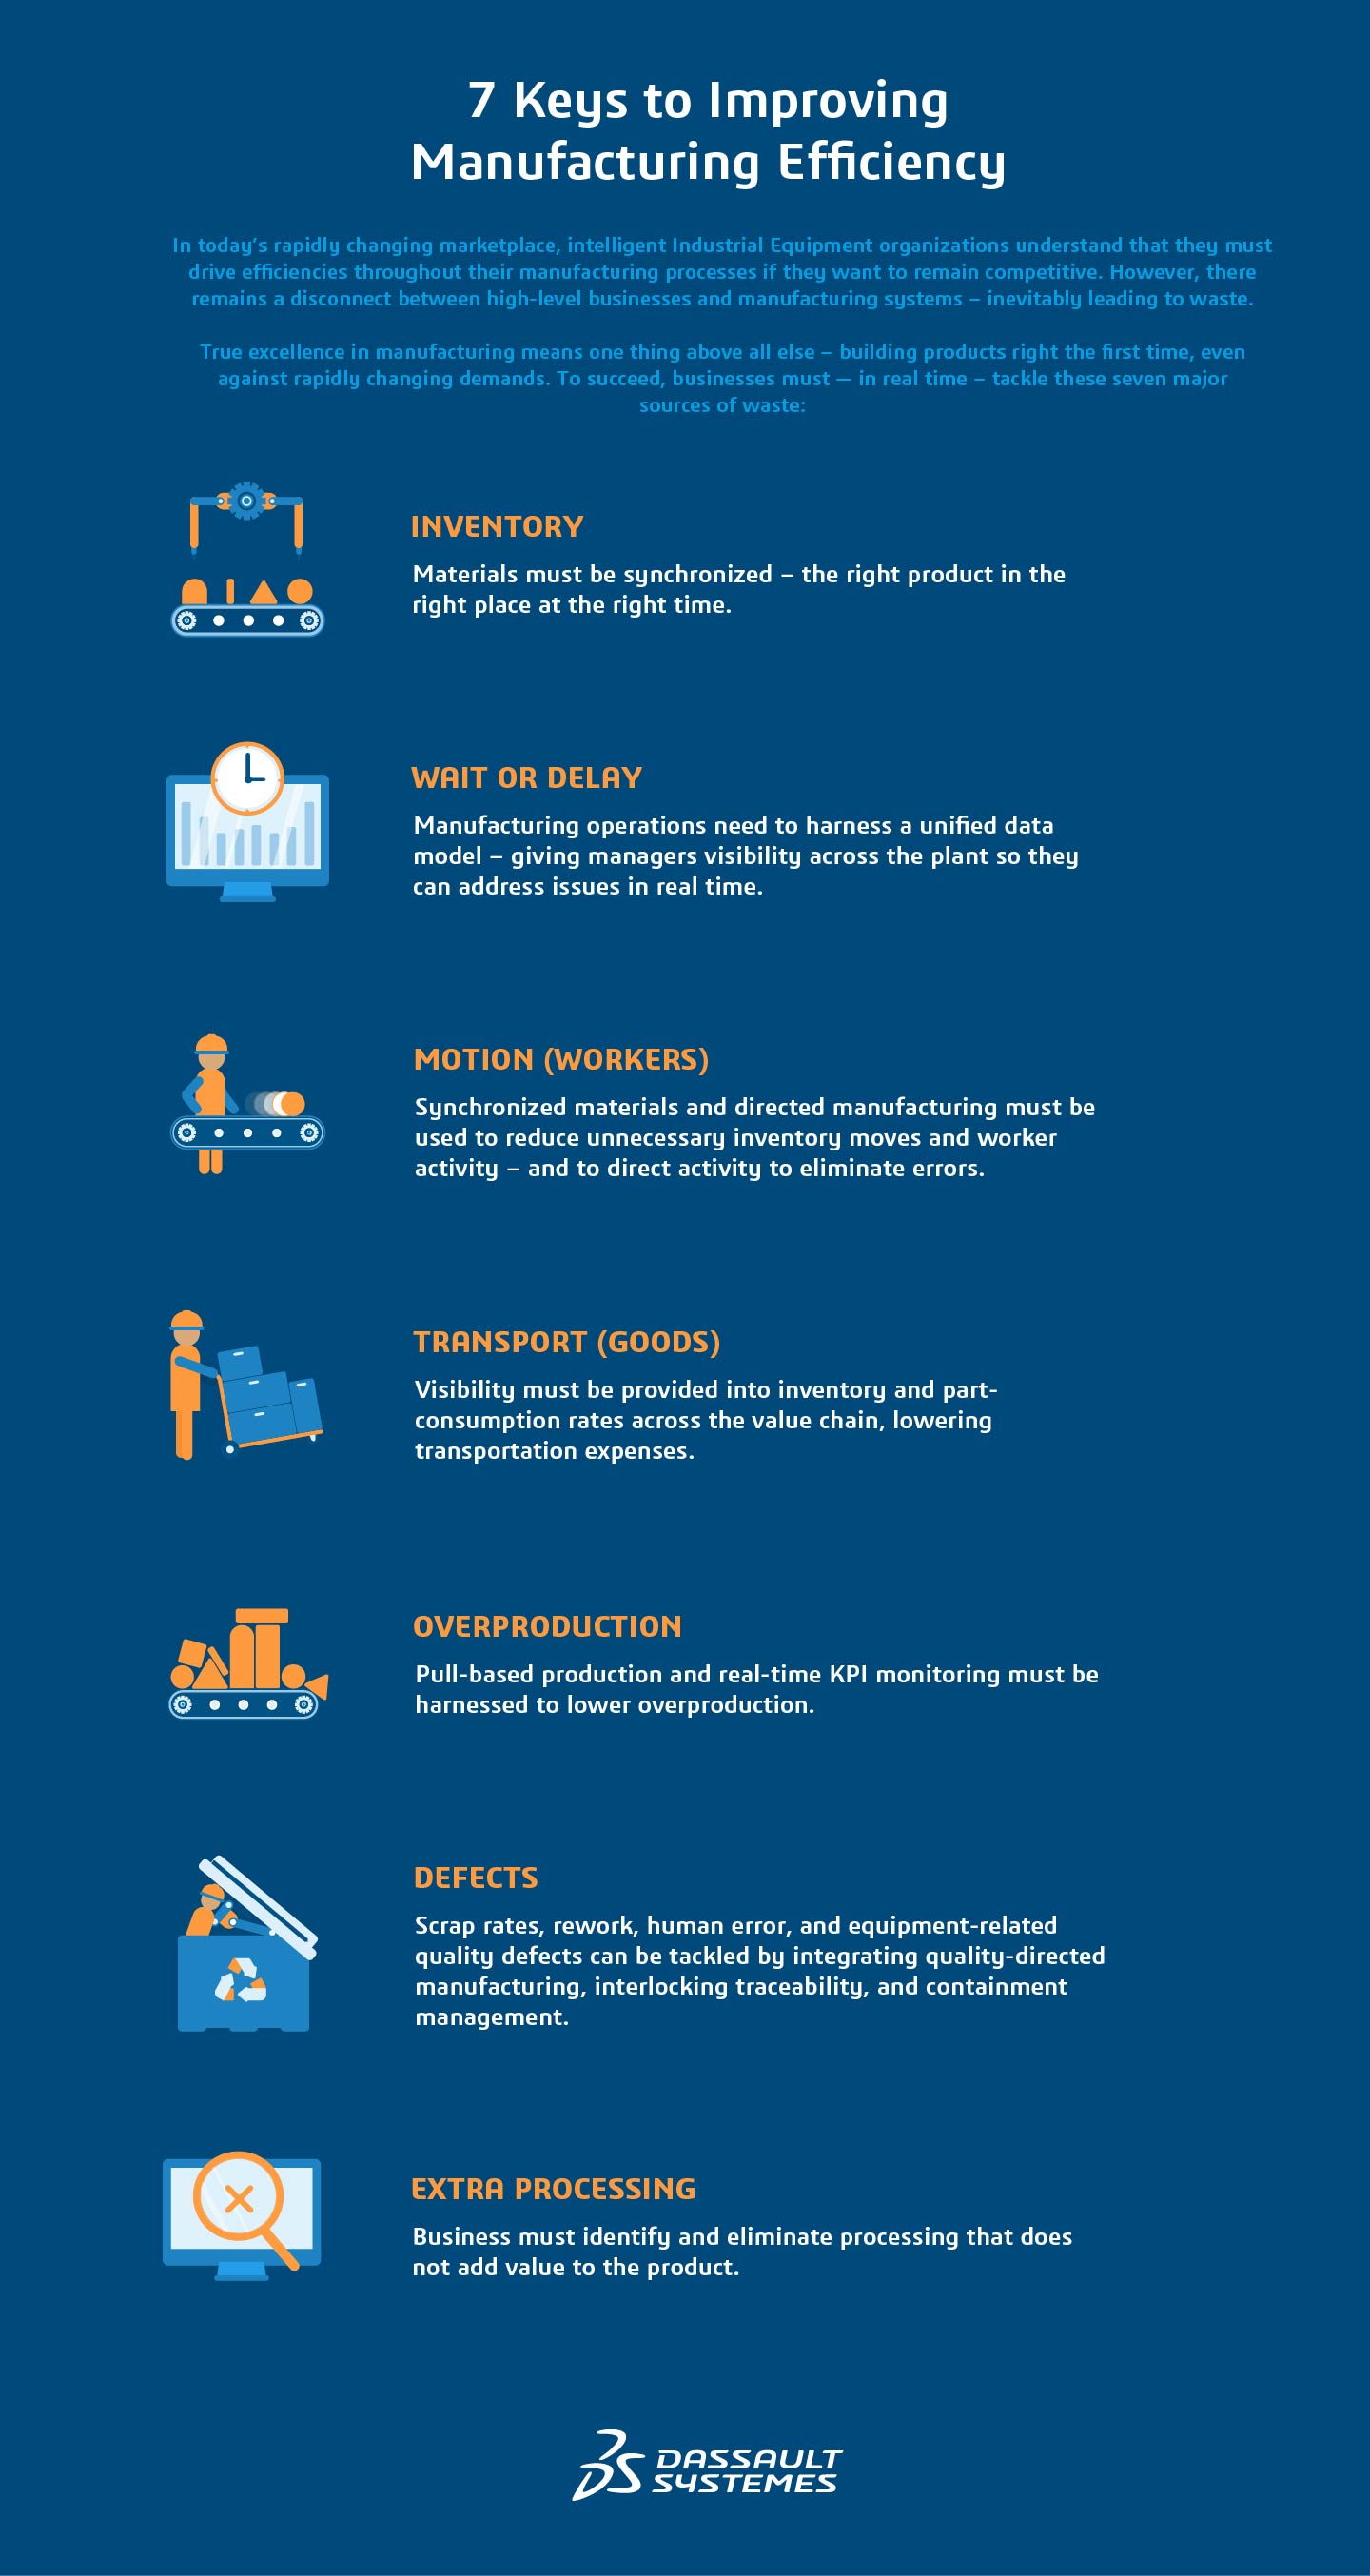 7 keys to improving manufacturing efficiency  > Industrial Equipment > Dassault Systèmes®